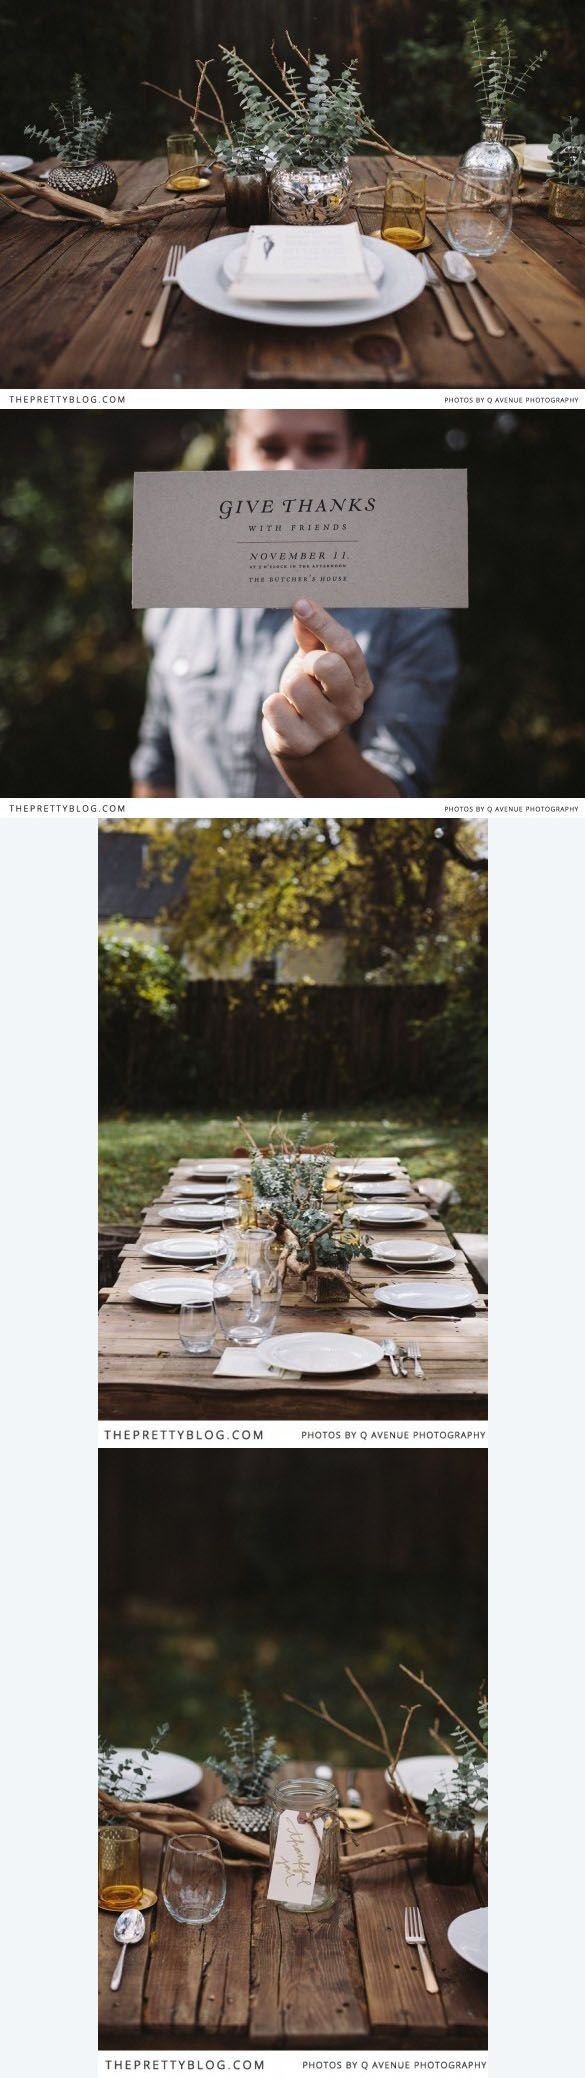 2014 Thanksgiving Rustic Outdoor Table Decorations - Setting, Wooden #2014